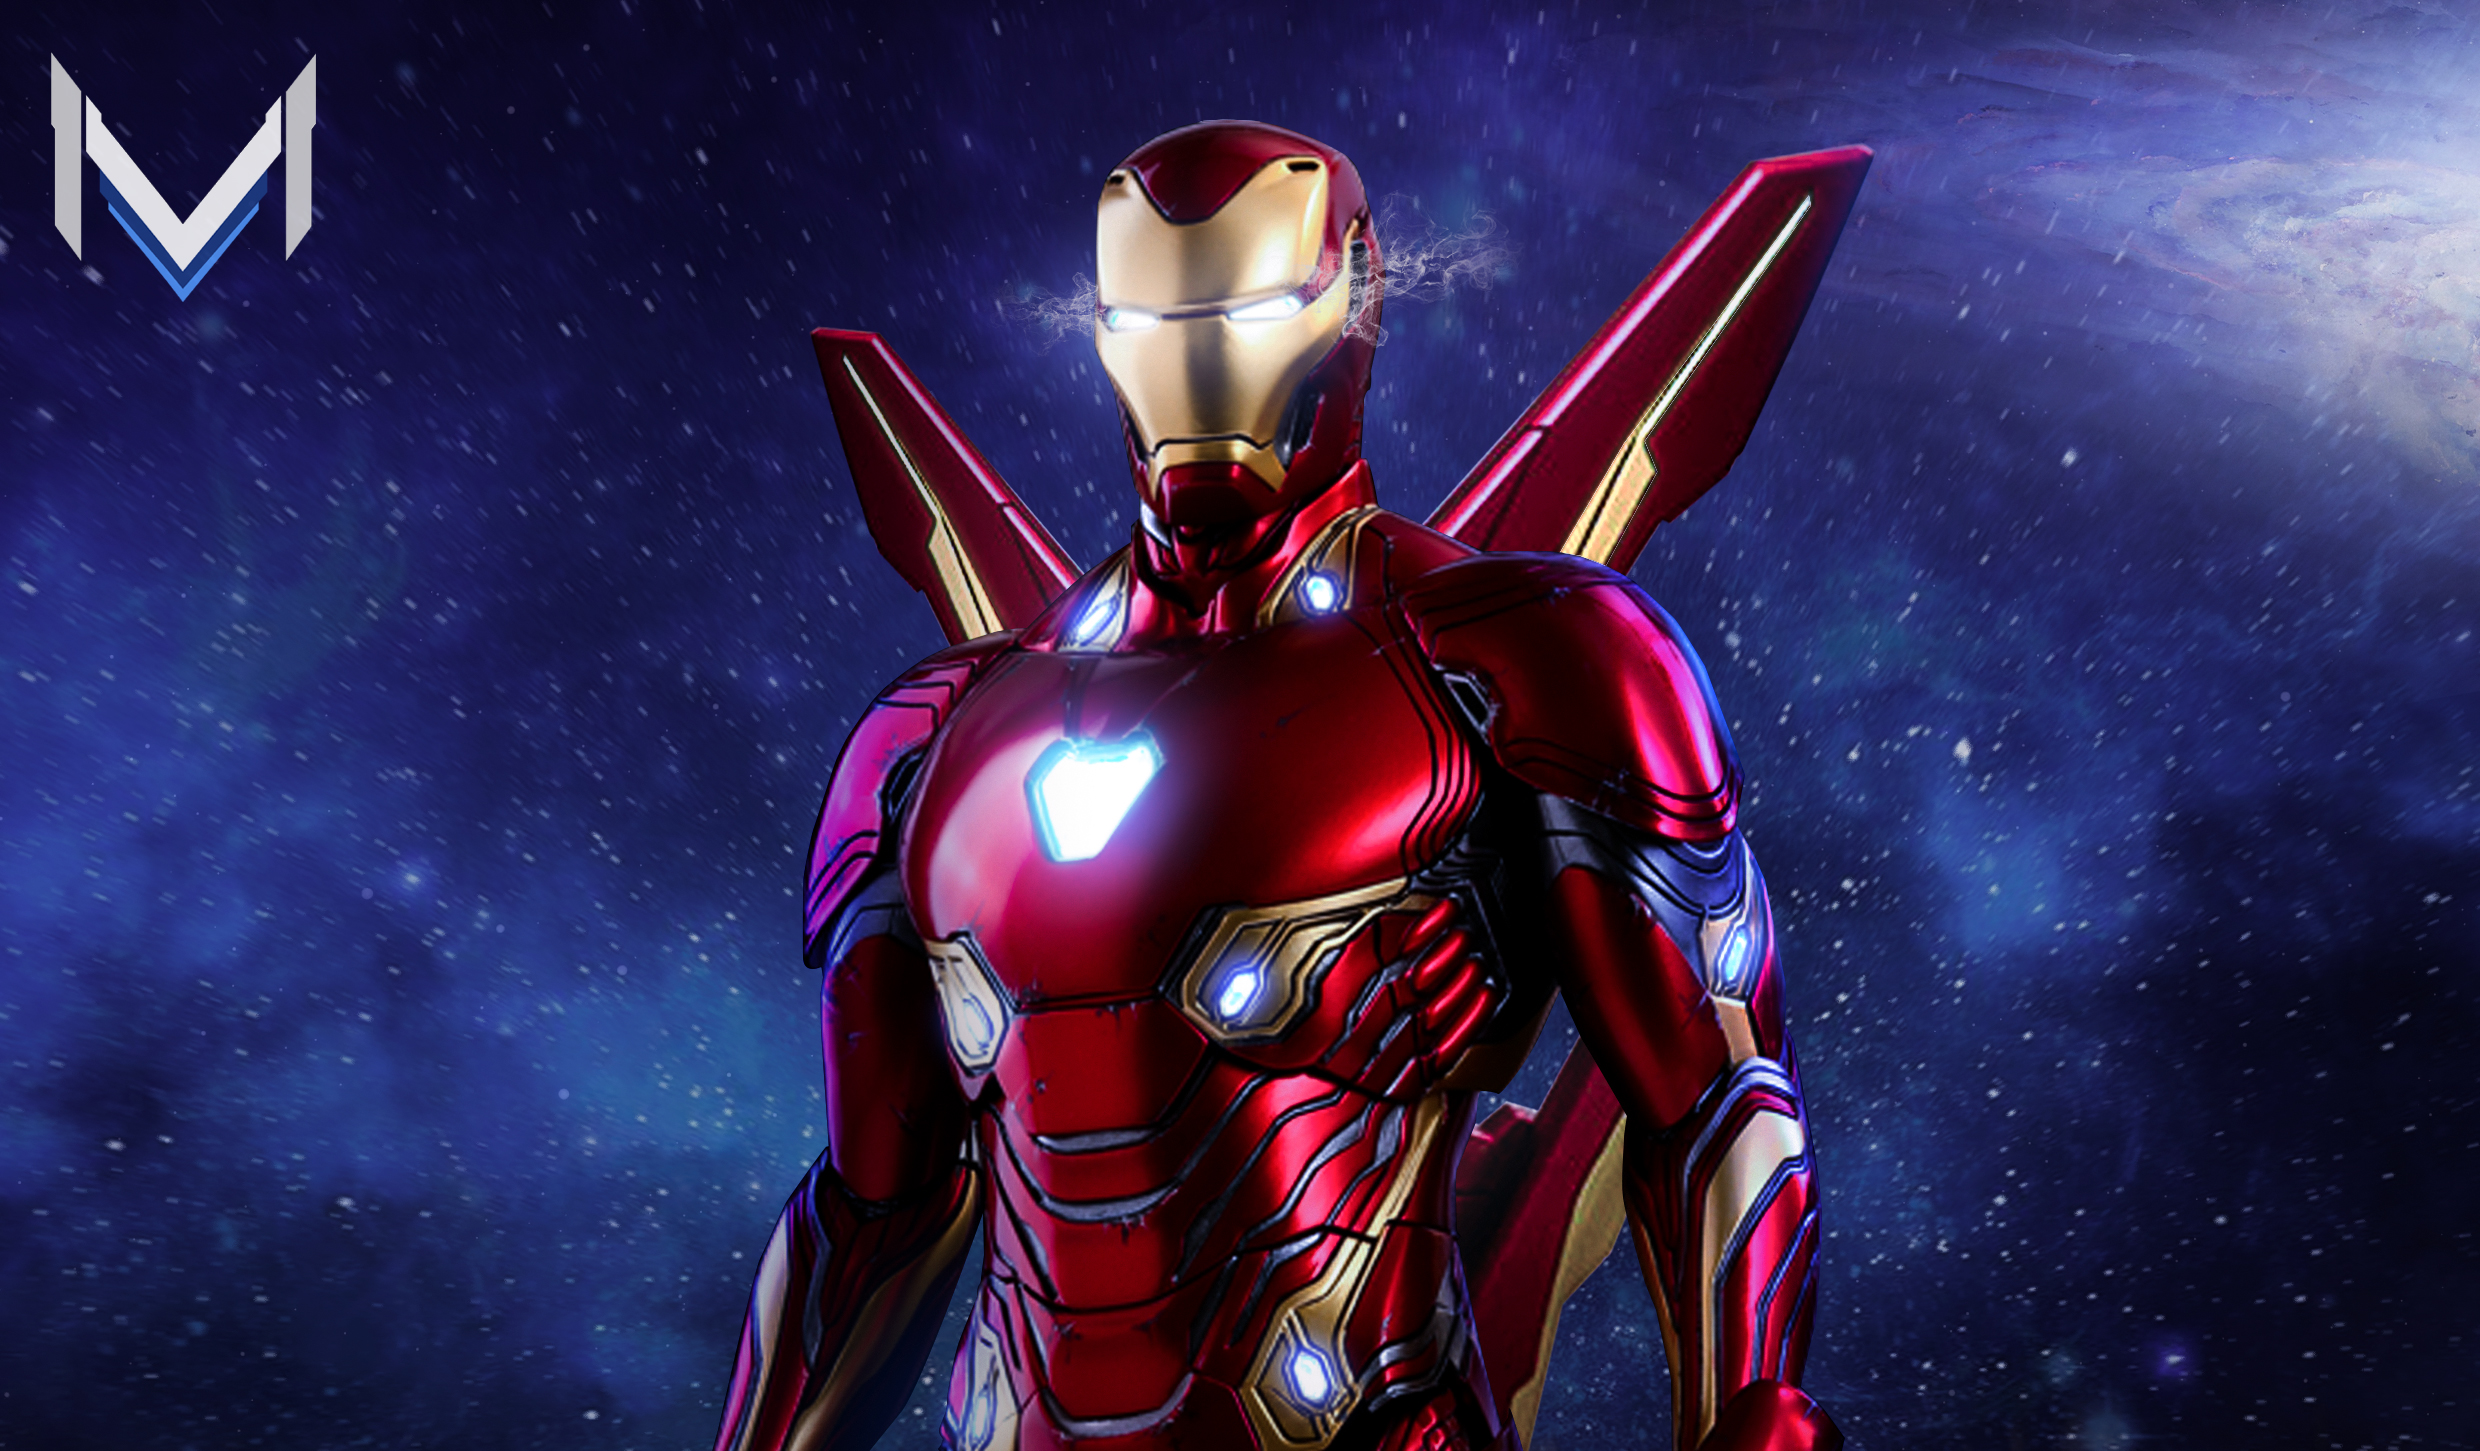 iron man avengers infinity war suit artwork, hd movies, 4k